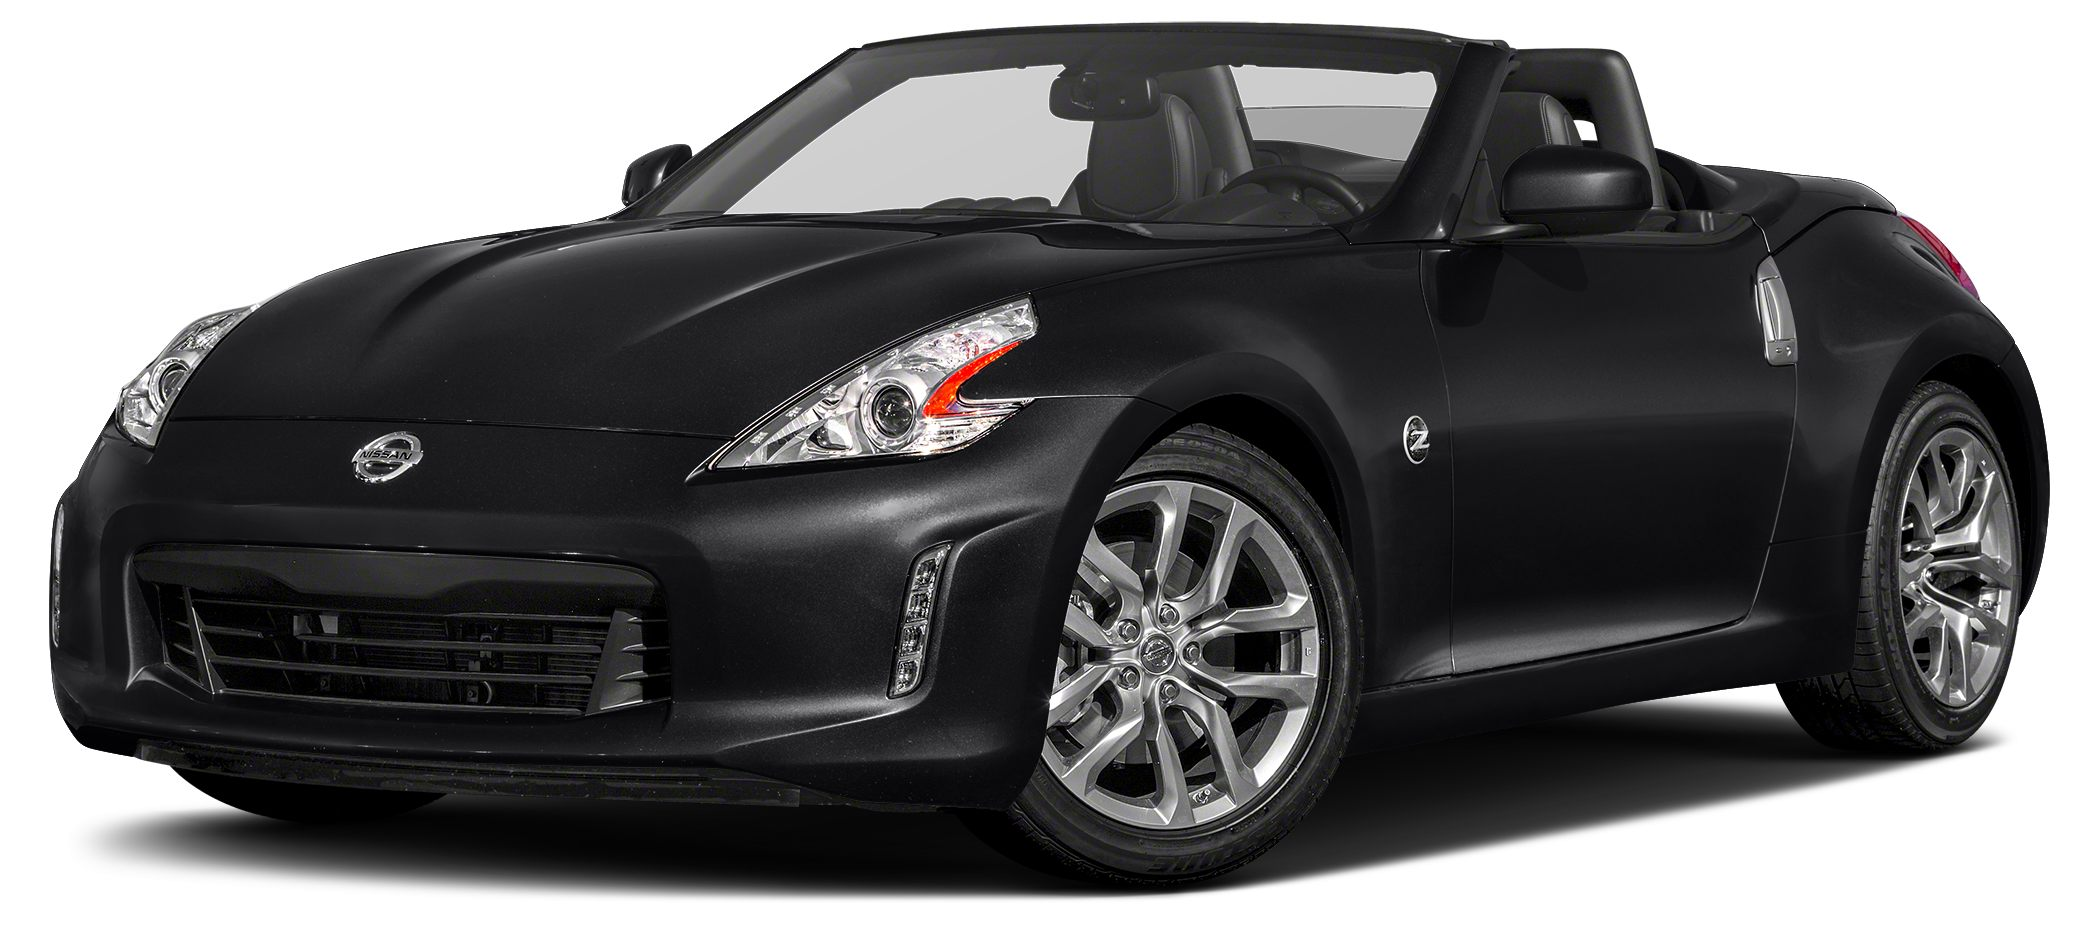 2016 Nissan 370Z Touring Sport Priced to sell 4404 below MSRP Navigation Heated Front Seats